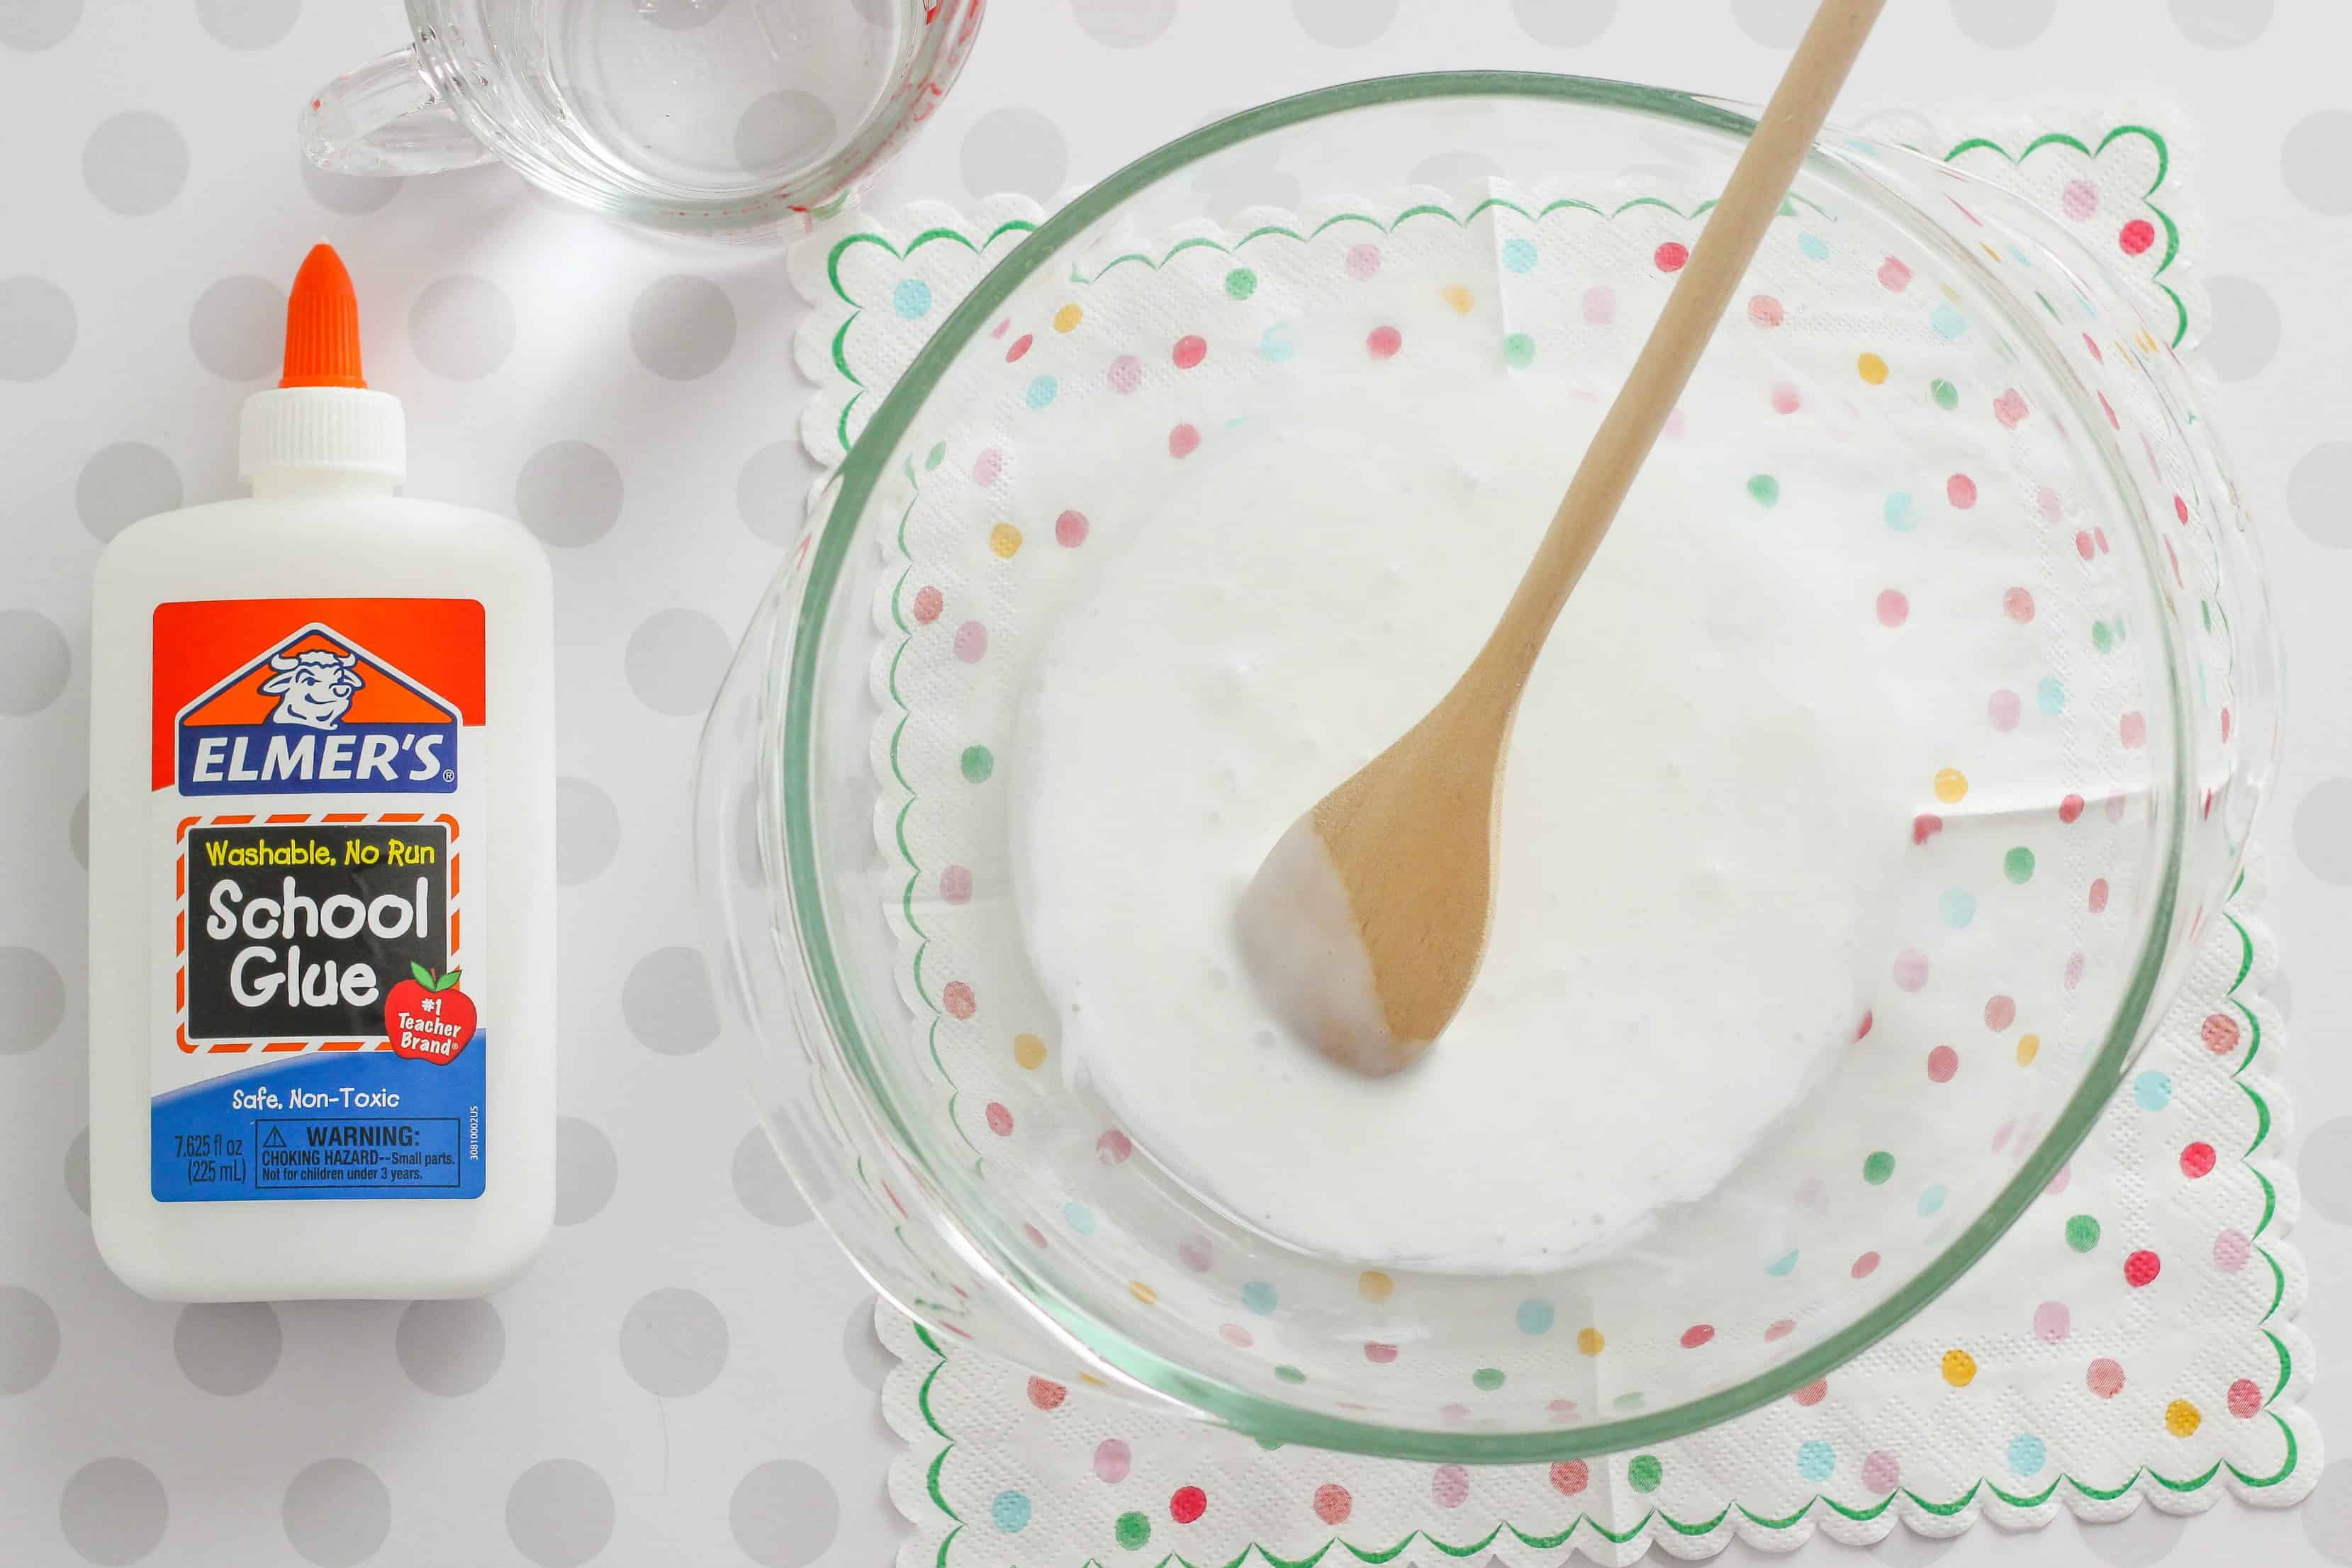 Create cute Ice Cream Sundae Slime with a fun texture from foam micro beads. This non-edible slime recipe is easy to make and kids have so much fun playing.